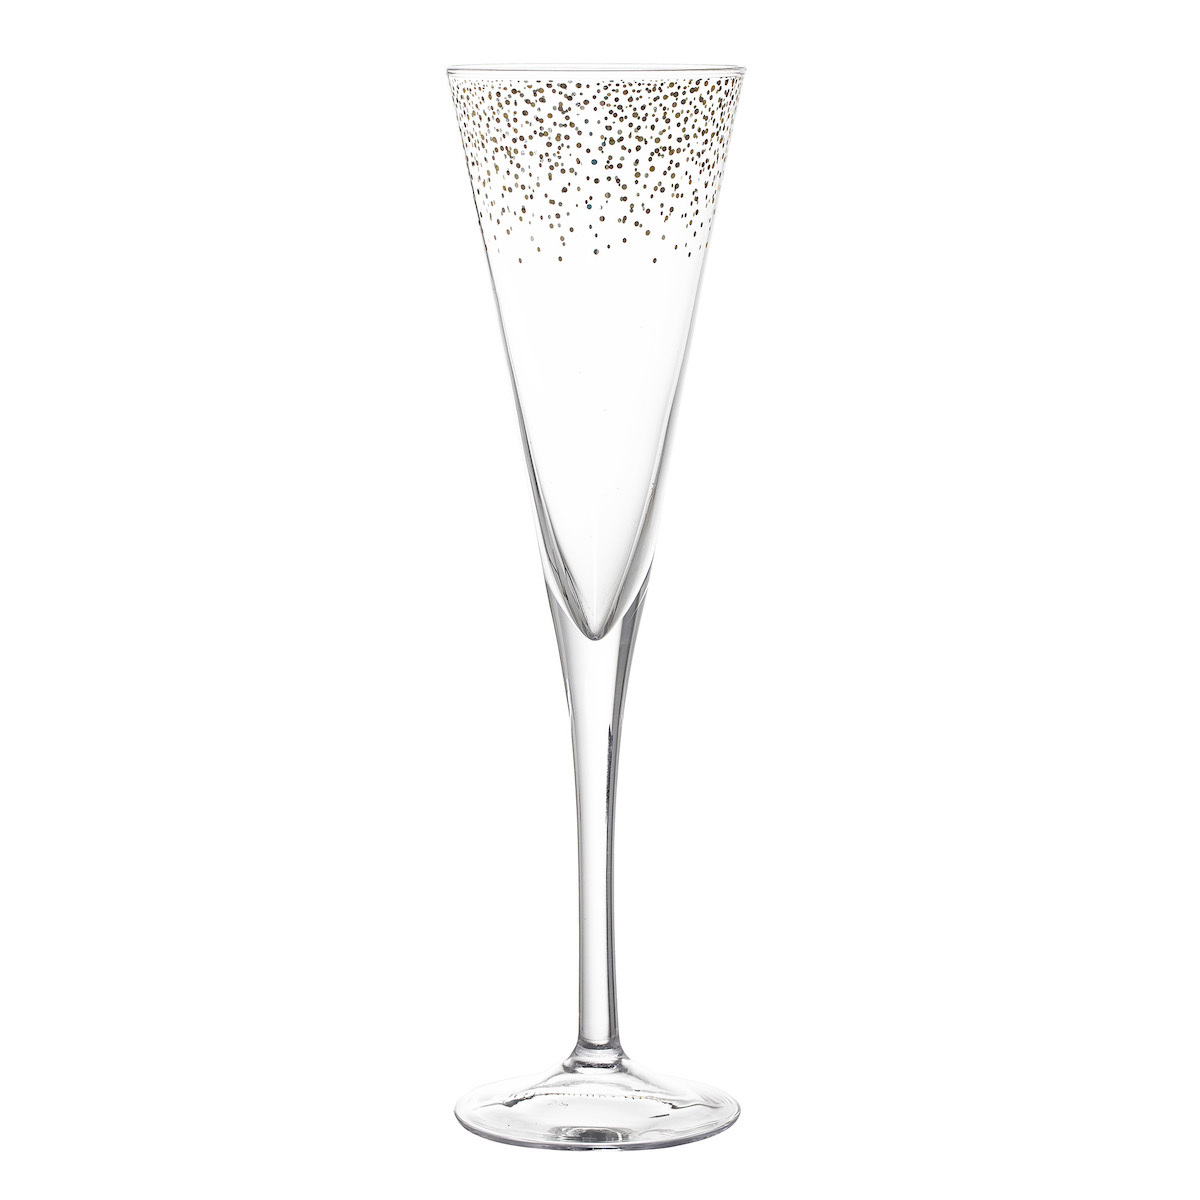 Champagnerglas_Sektglas_Gold_rand_Silber_Rand_Punkte_Bloomingville